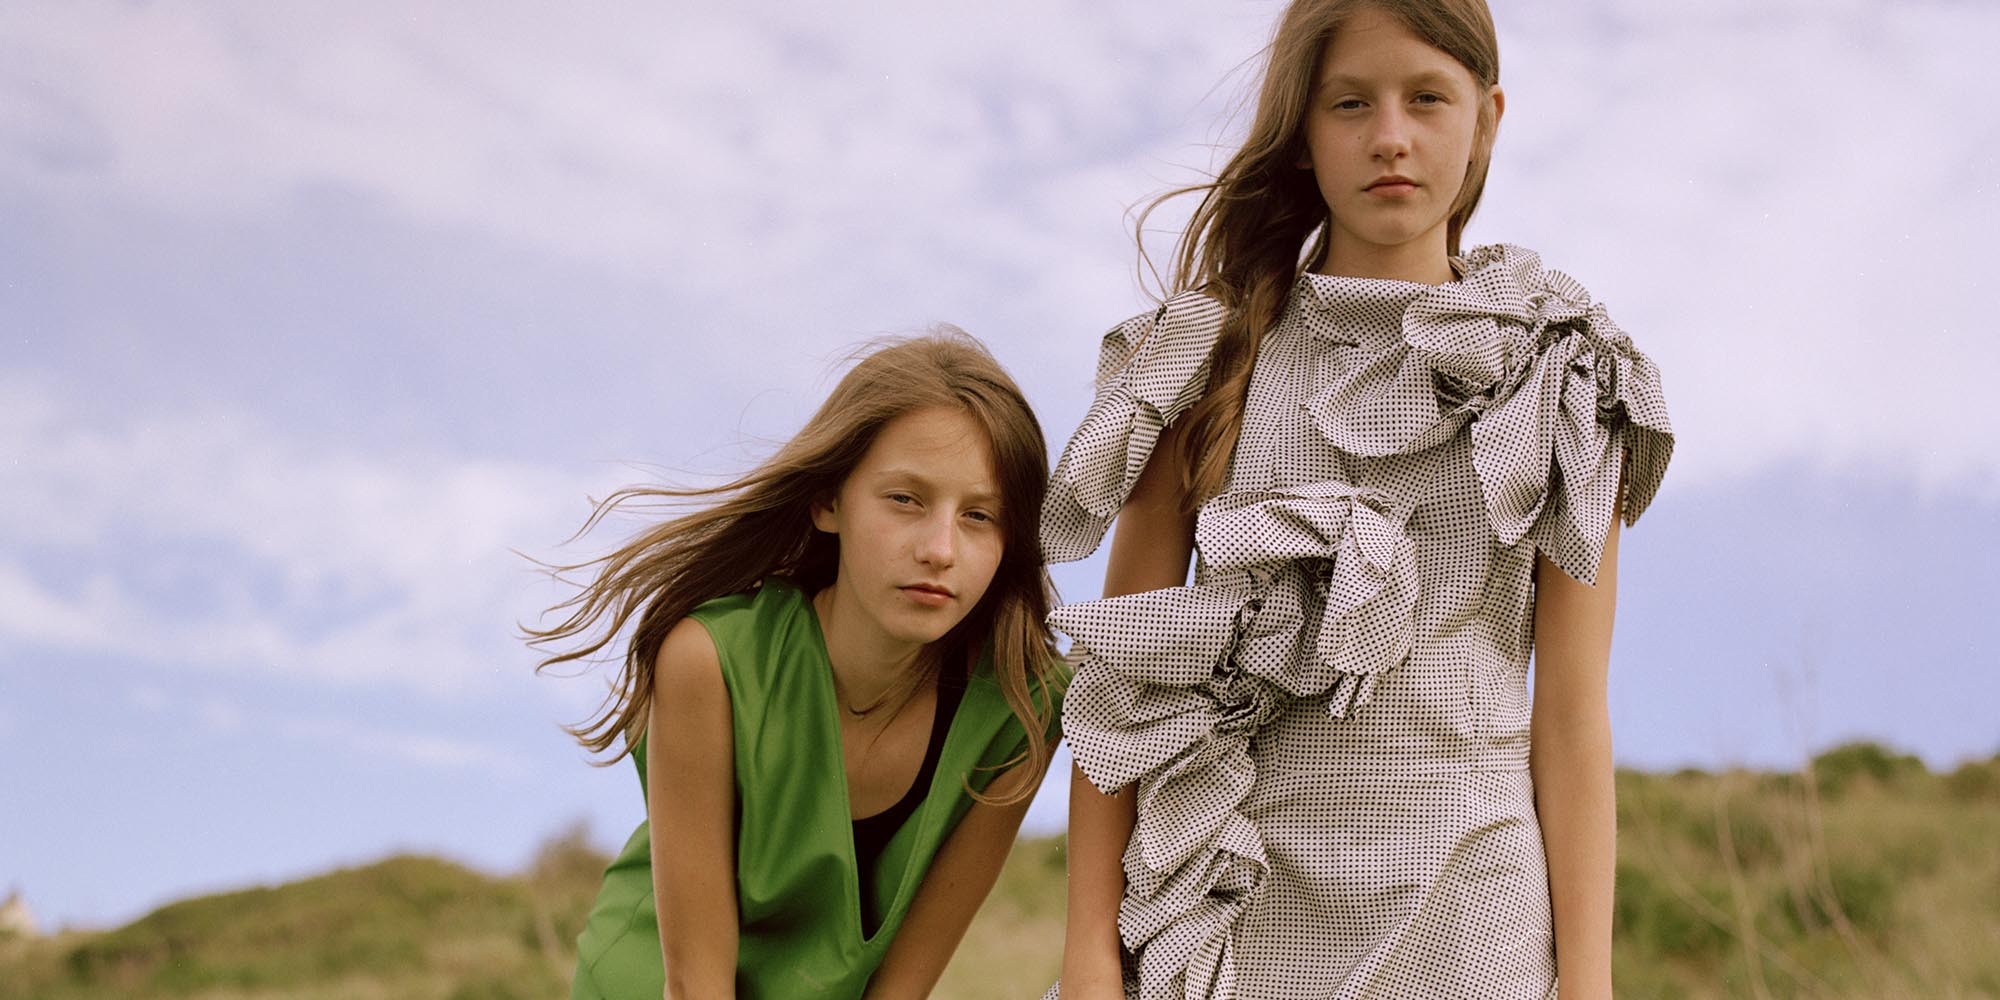 coming-of-age-1-banner-marblemagazine.jpg